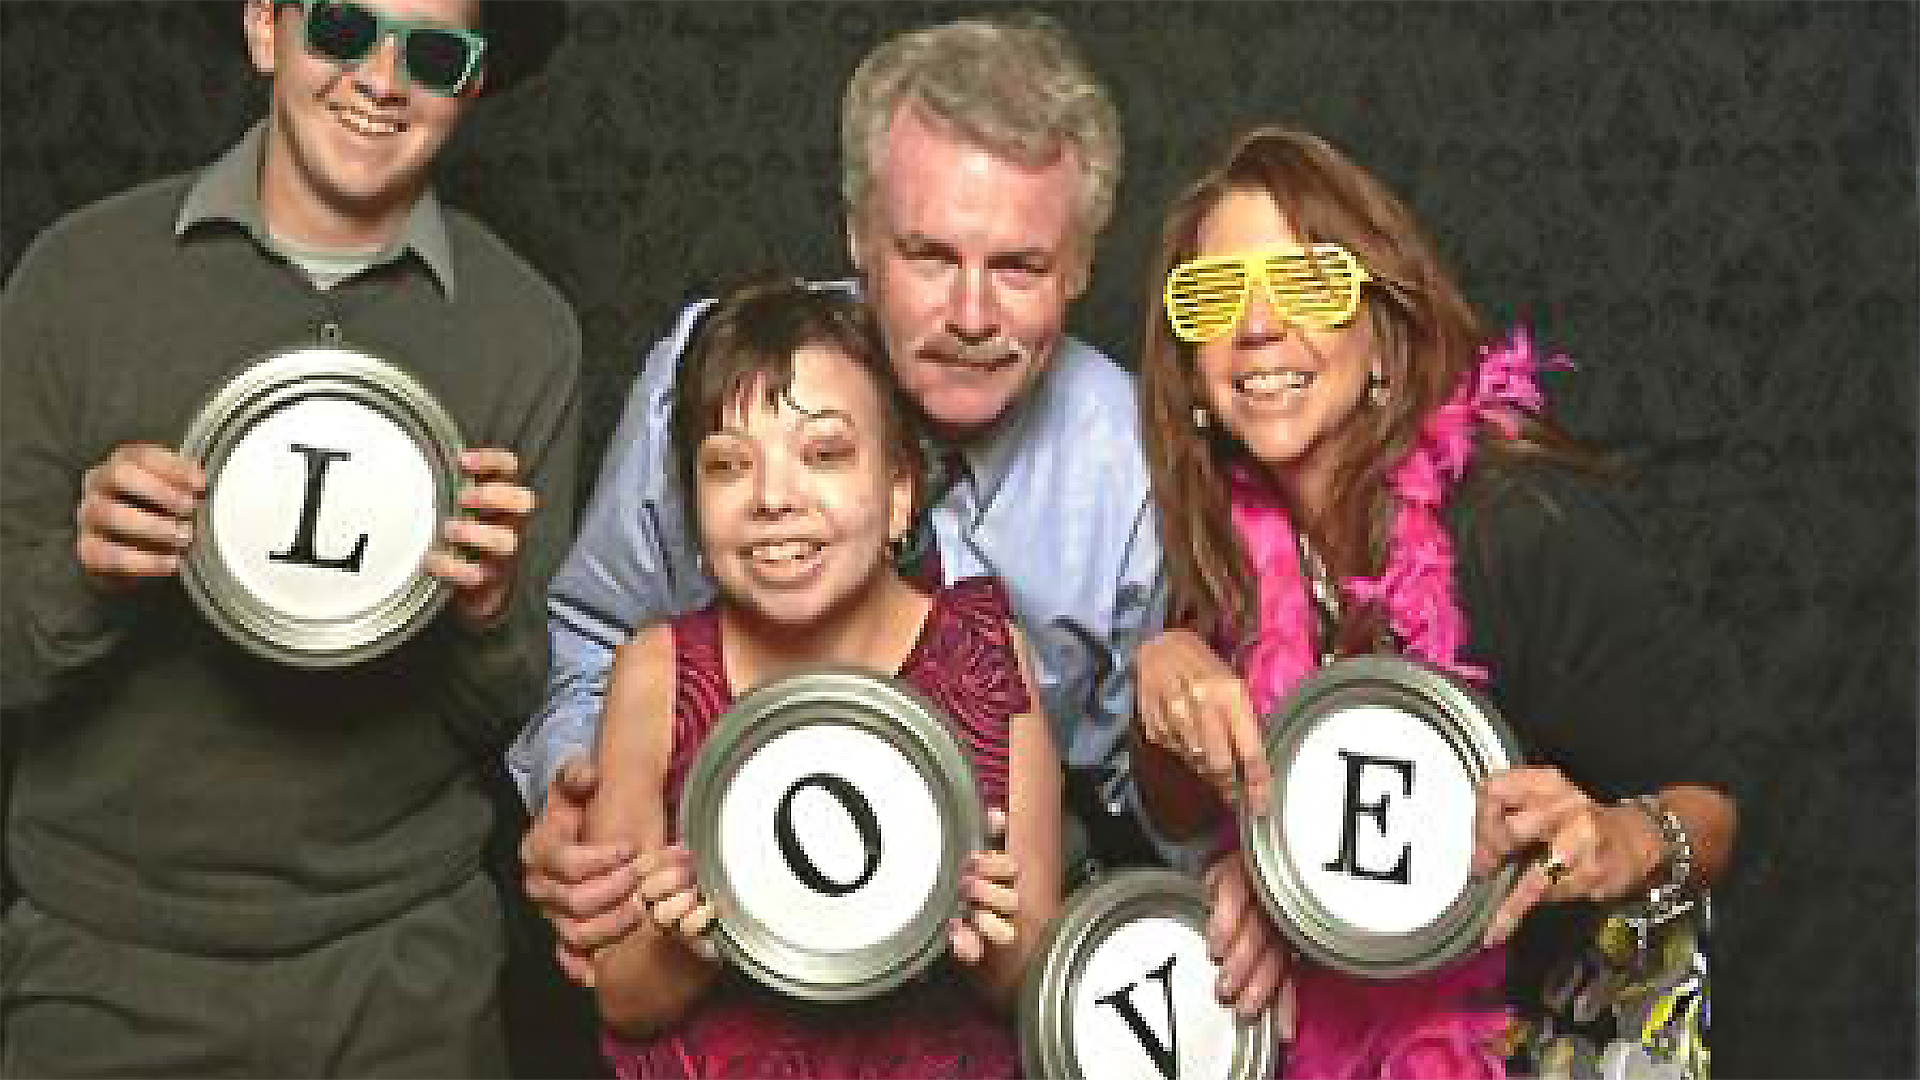 Family having fun in photo with props spelling out LOVE